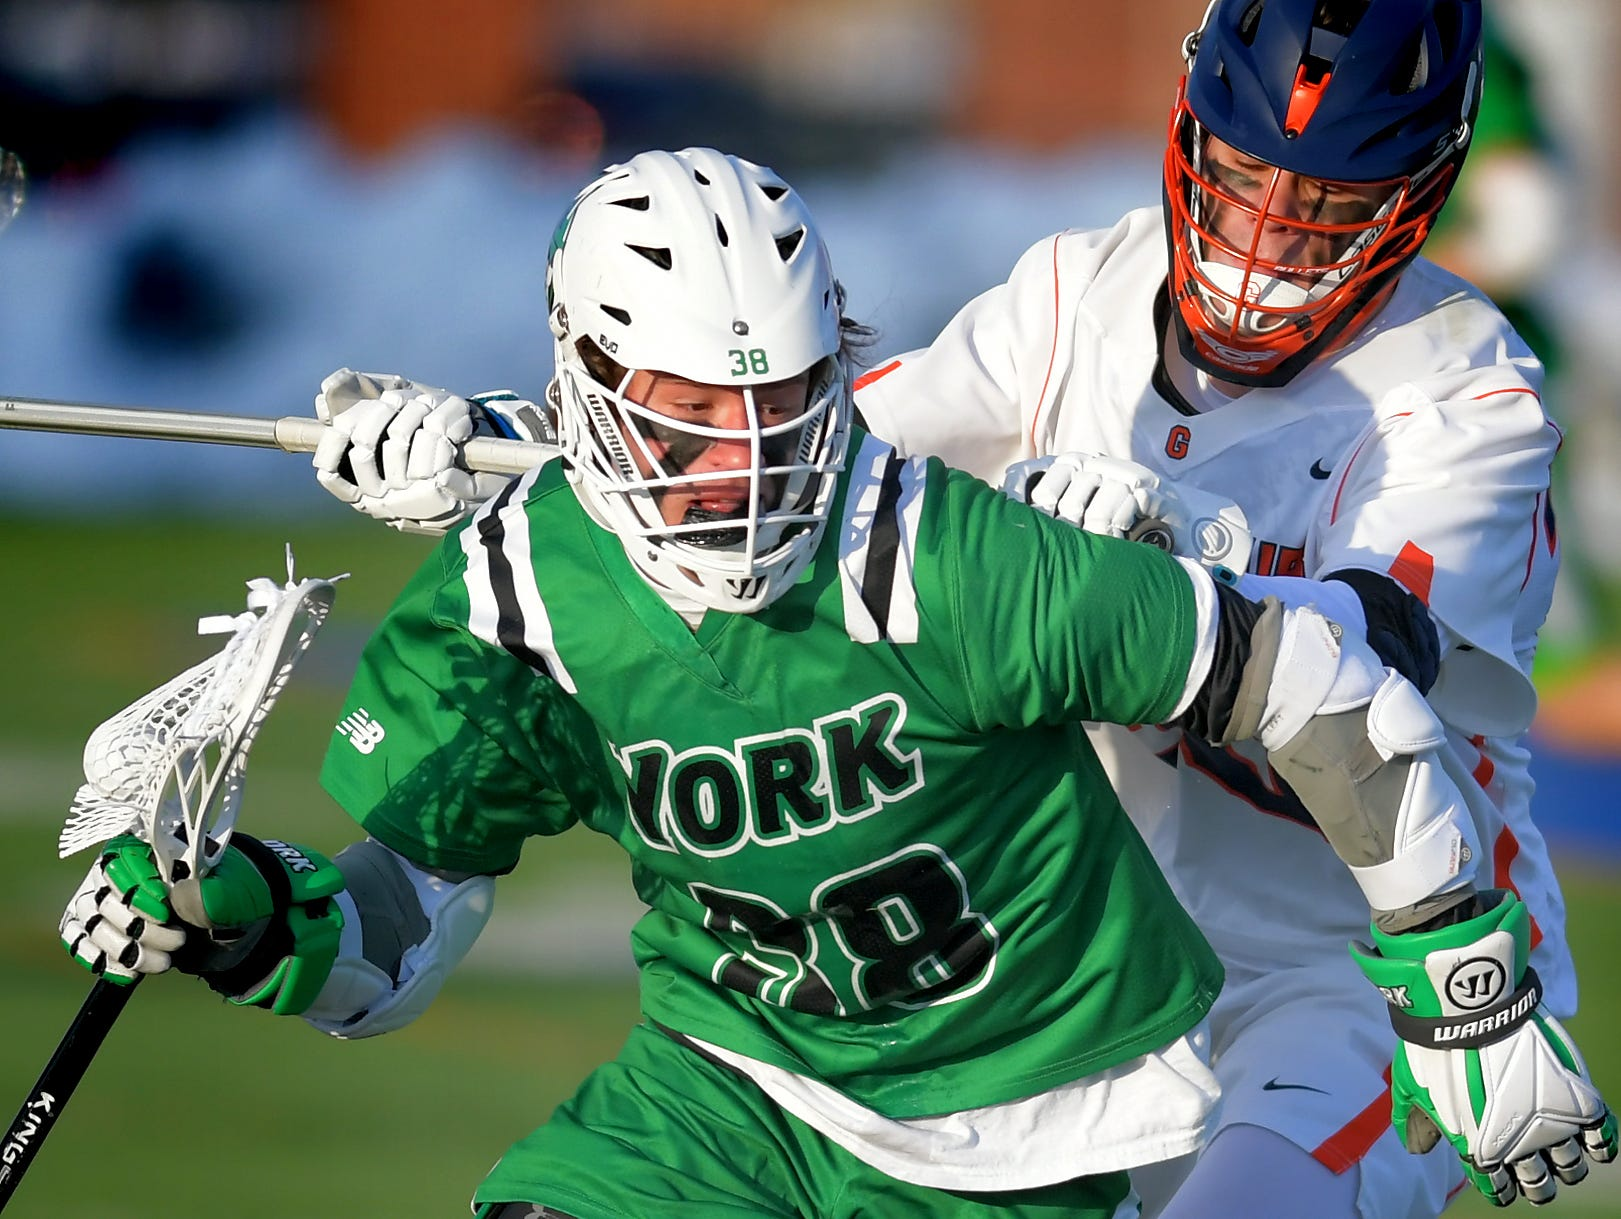 York College's Brendan McGrath moves the ball with Gettysburg College's Andrew Horn defending during lacrosse action at Gettysburg Wednesday, March 6, 2019. Both teams were ranked in the top 10 nationally in NCAA Division III men's lacrosse coming into the game. York won 14-6. Bill Kalina photo